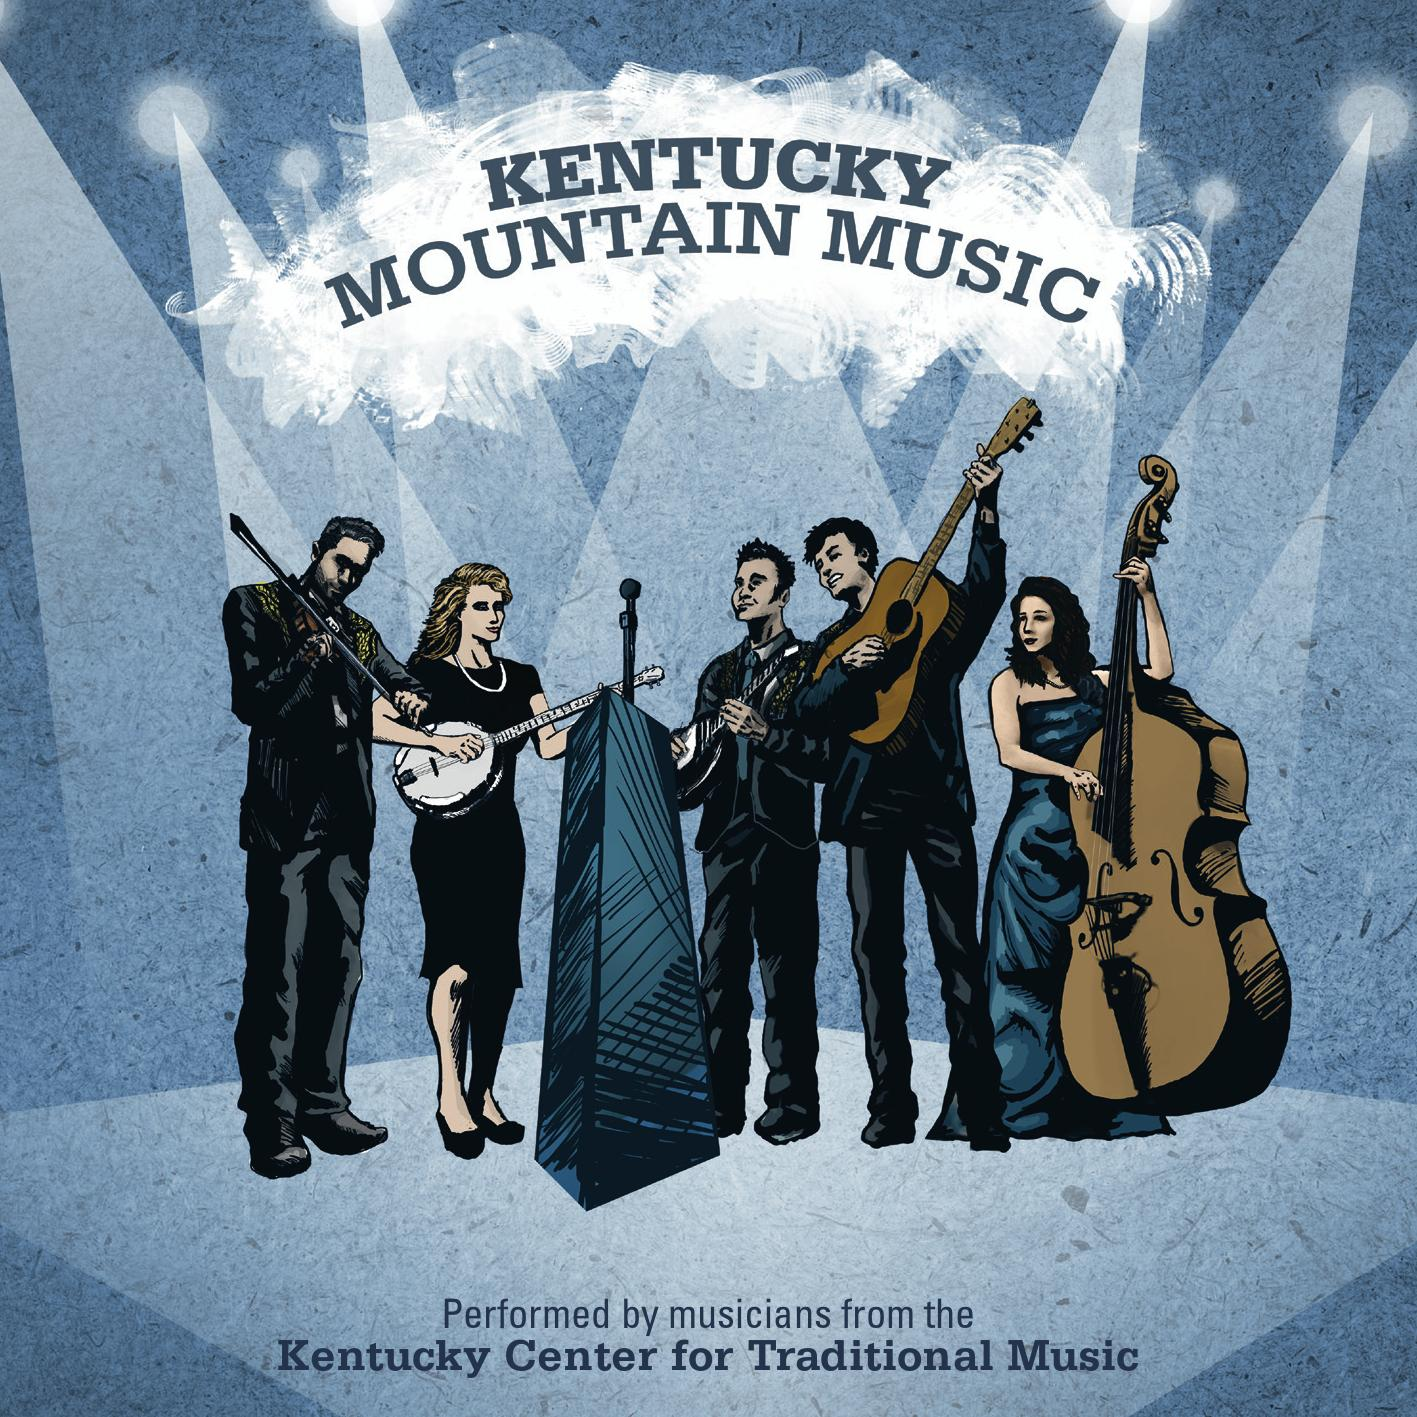 Kentucky Mountain Music by Morehead State University - issuu